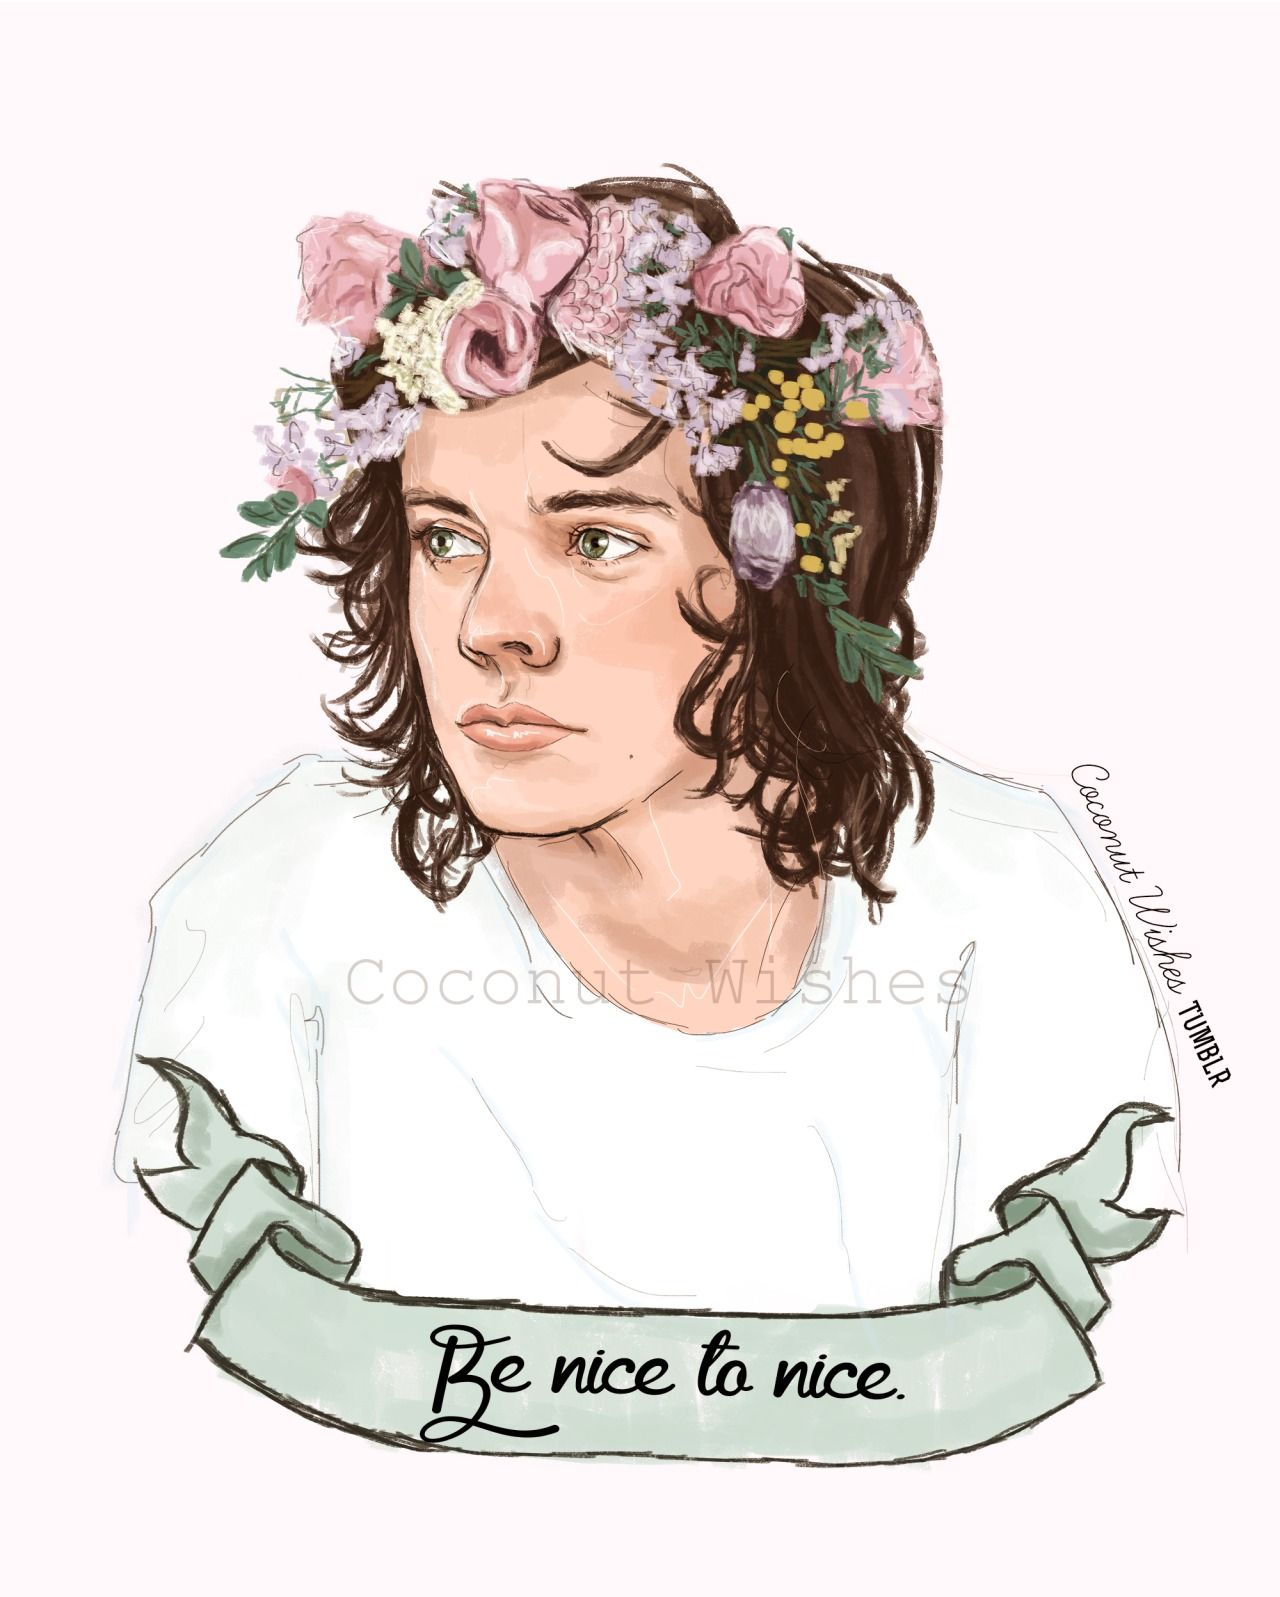 Be nice to nice harry styles fan art coconutwishes nicest kid in be nice to nice harry styles fan art coconutwishes nicest kid in town izmirmasajfo Image collections